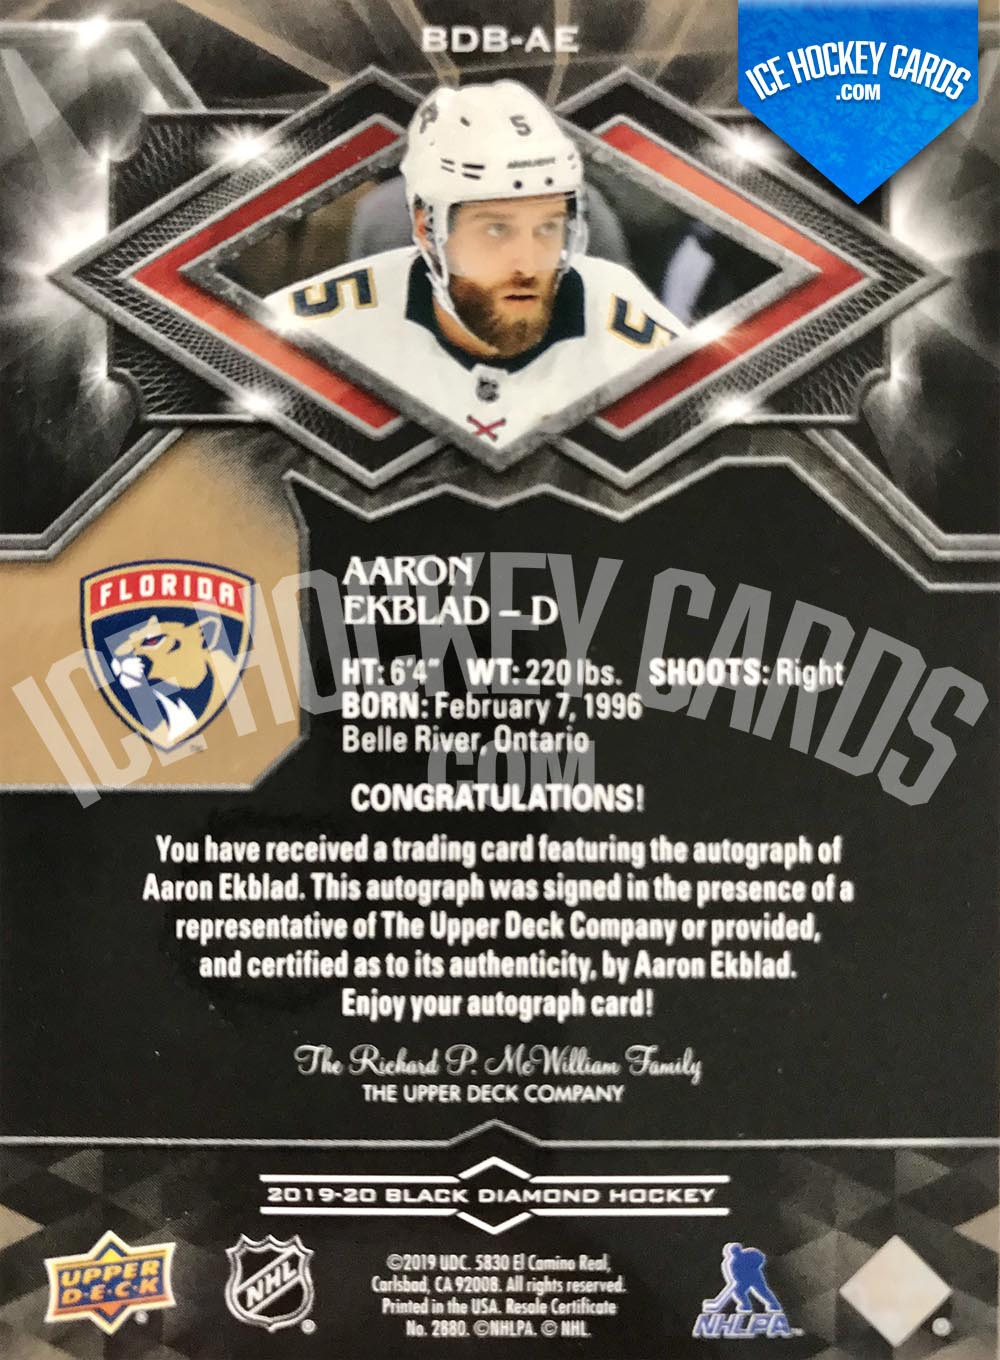 Upper Deck - Black Diamond 2019-20 - Aaron Ekblad Authentic Signature # to 99 back